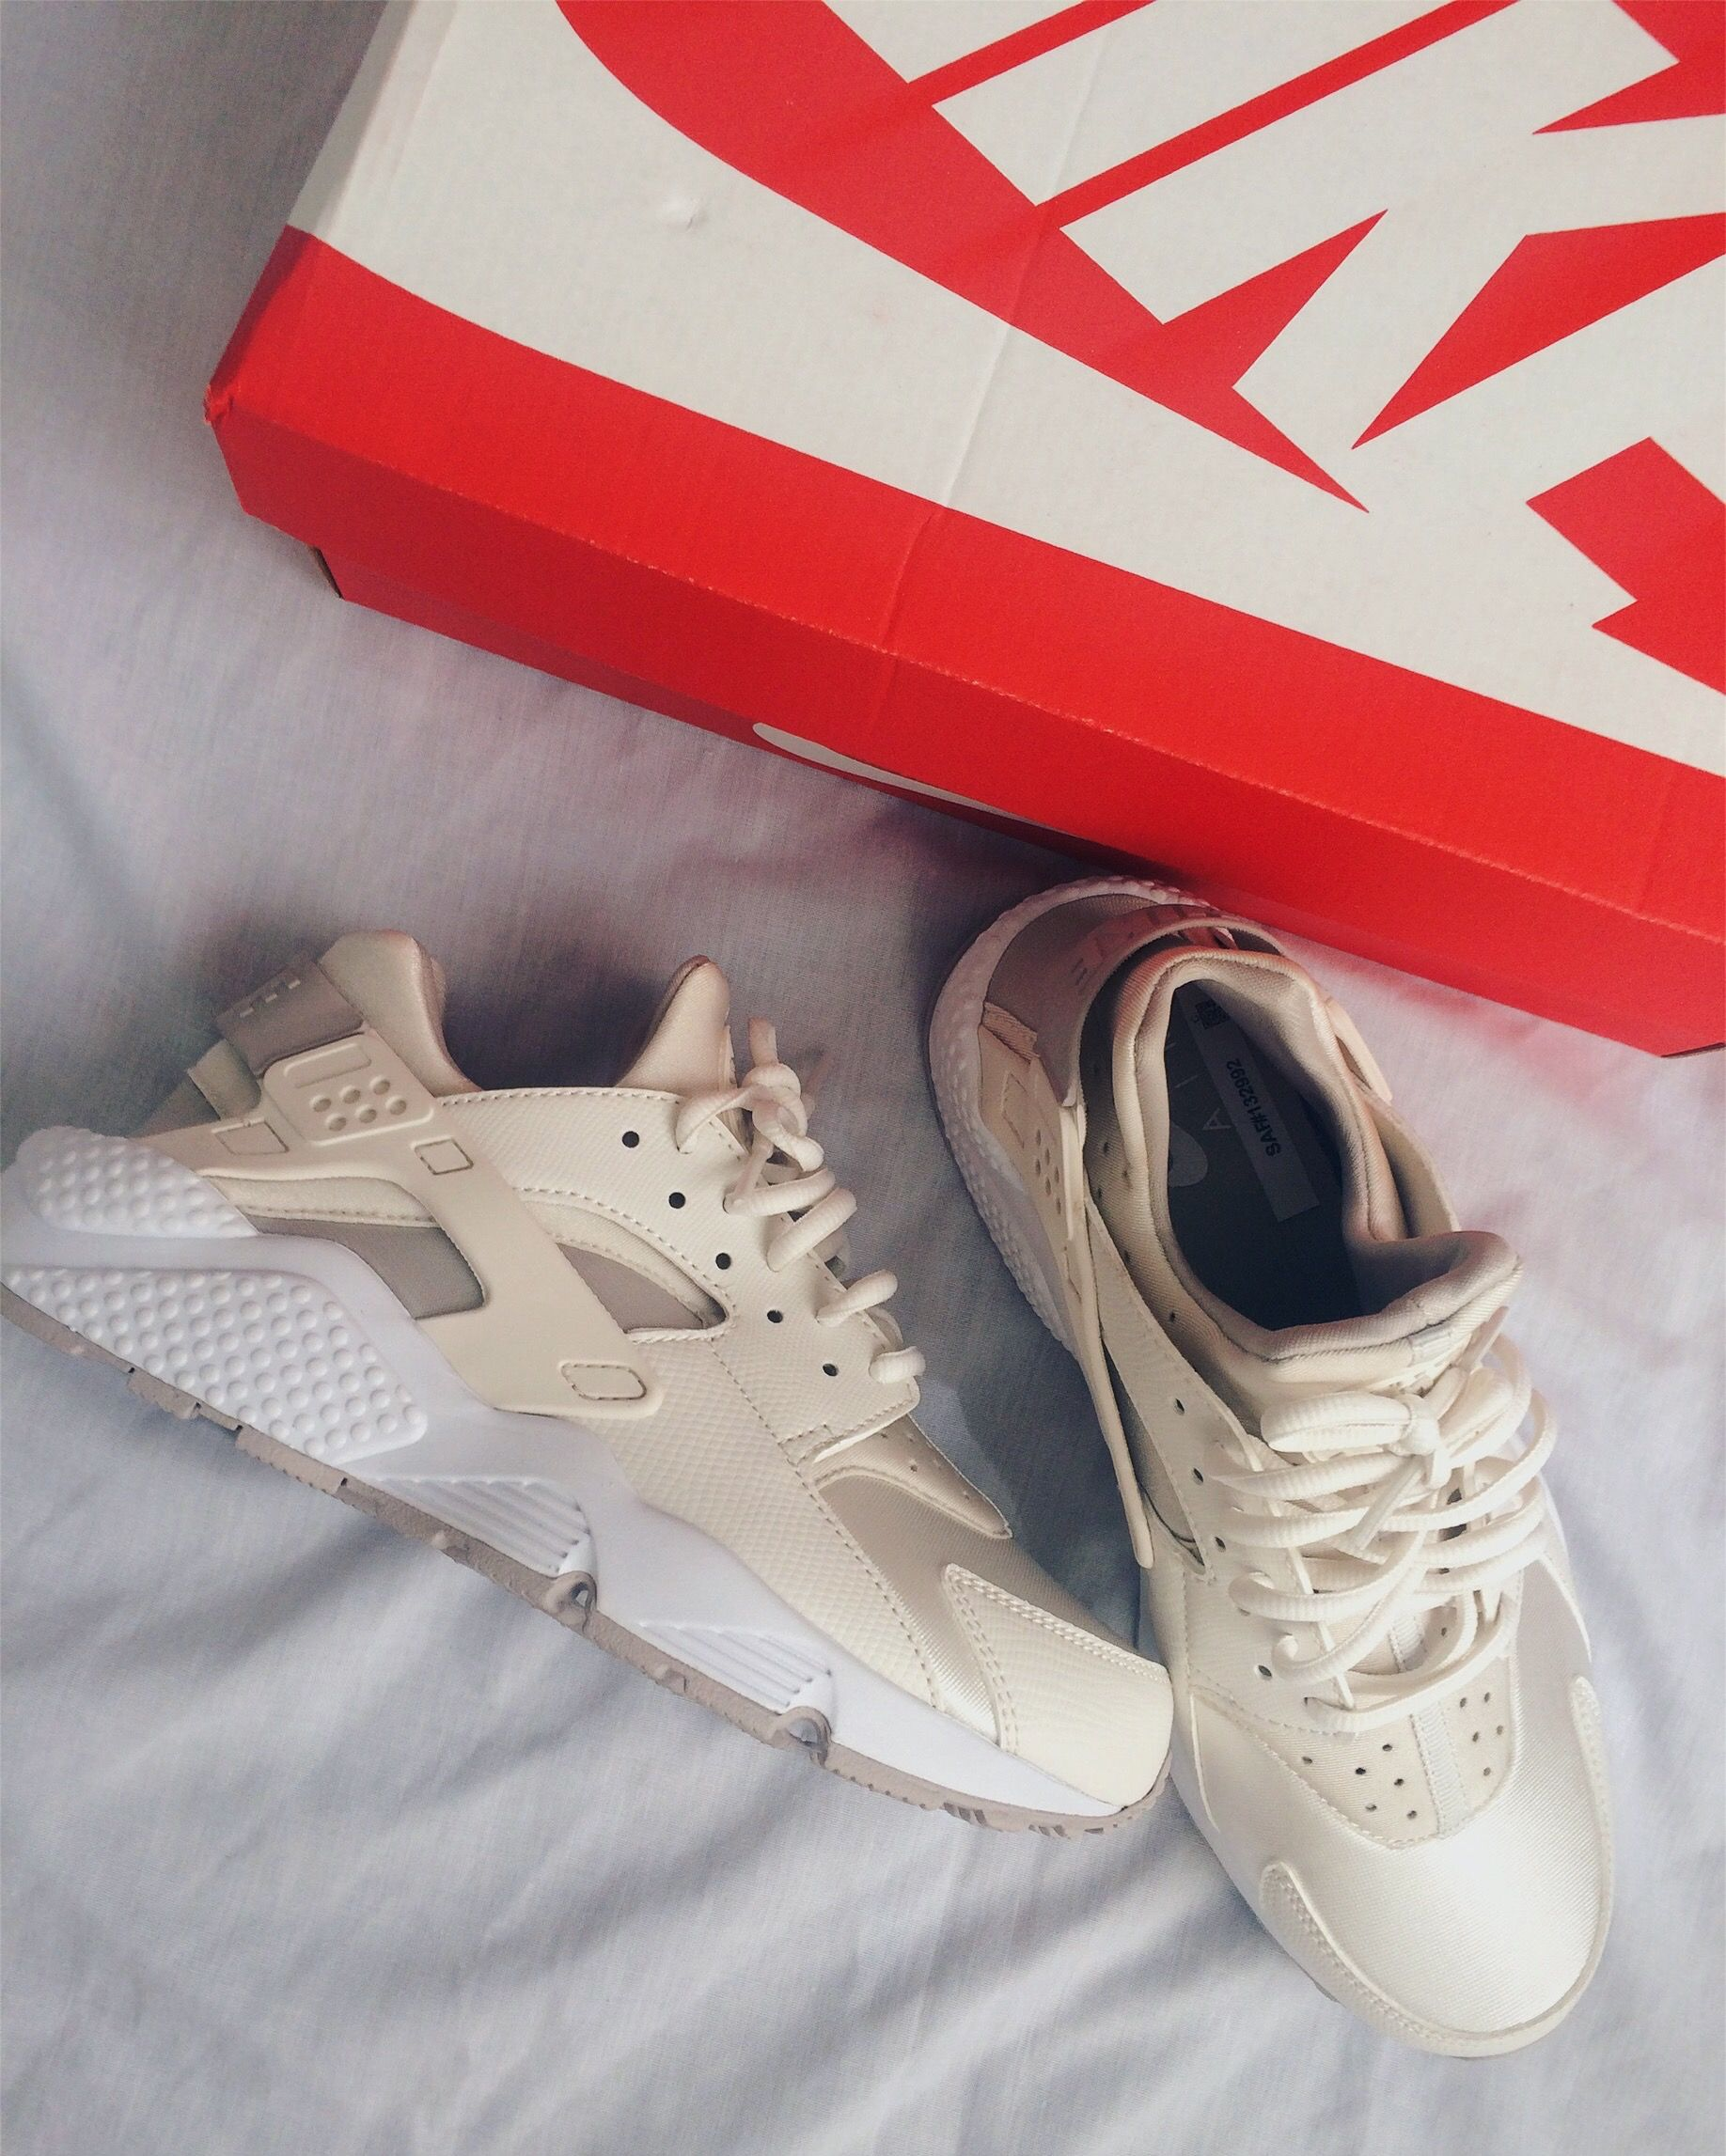 super popular 28c12 0706f Nike Huarache Phantom White Sneakers Cream Beige Outfit Street Style